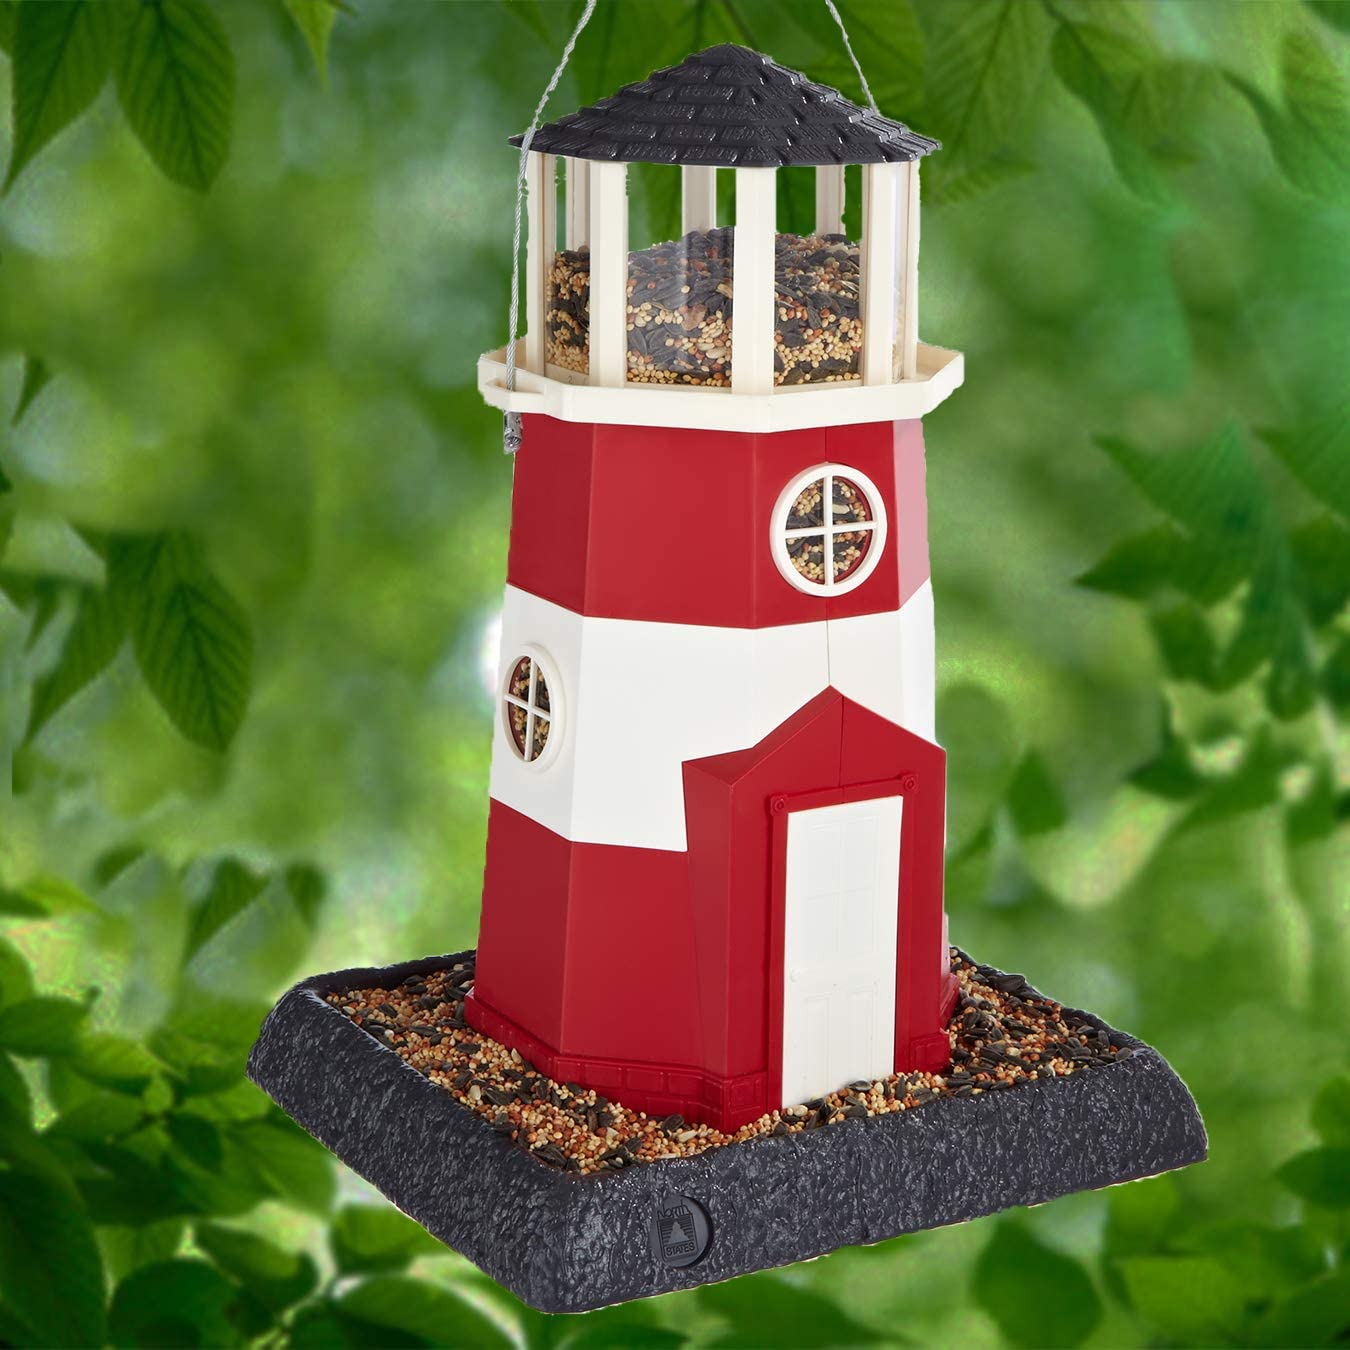 Shoreline Large Lighthouse Birdfeeder: Squirrel Proof Hanging Cable included, or Pole Mount (pole sold separately). Extra Large, 8 lb. Seed Capacity